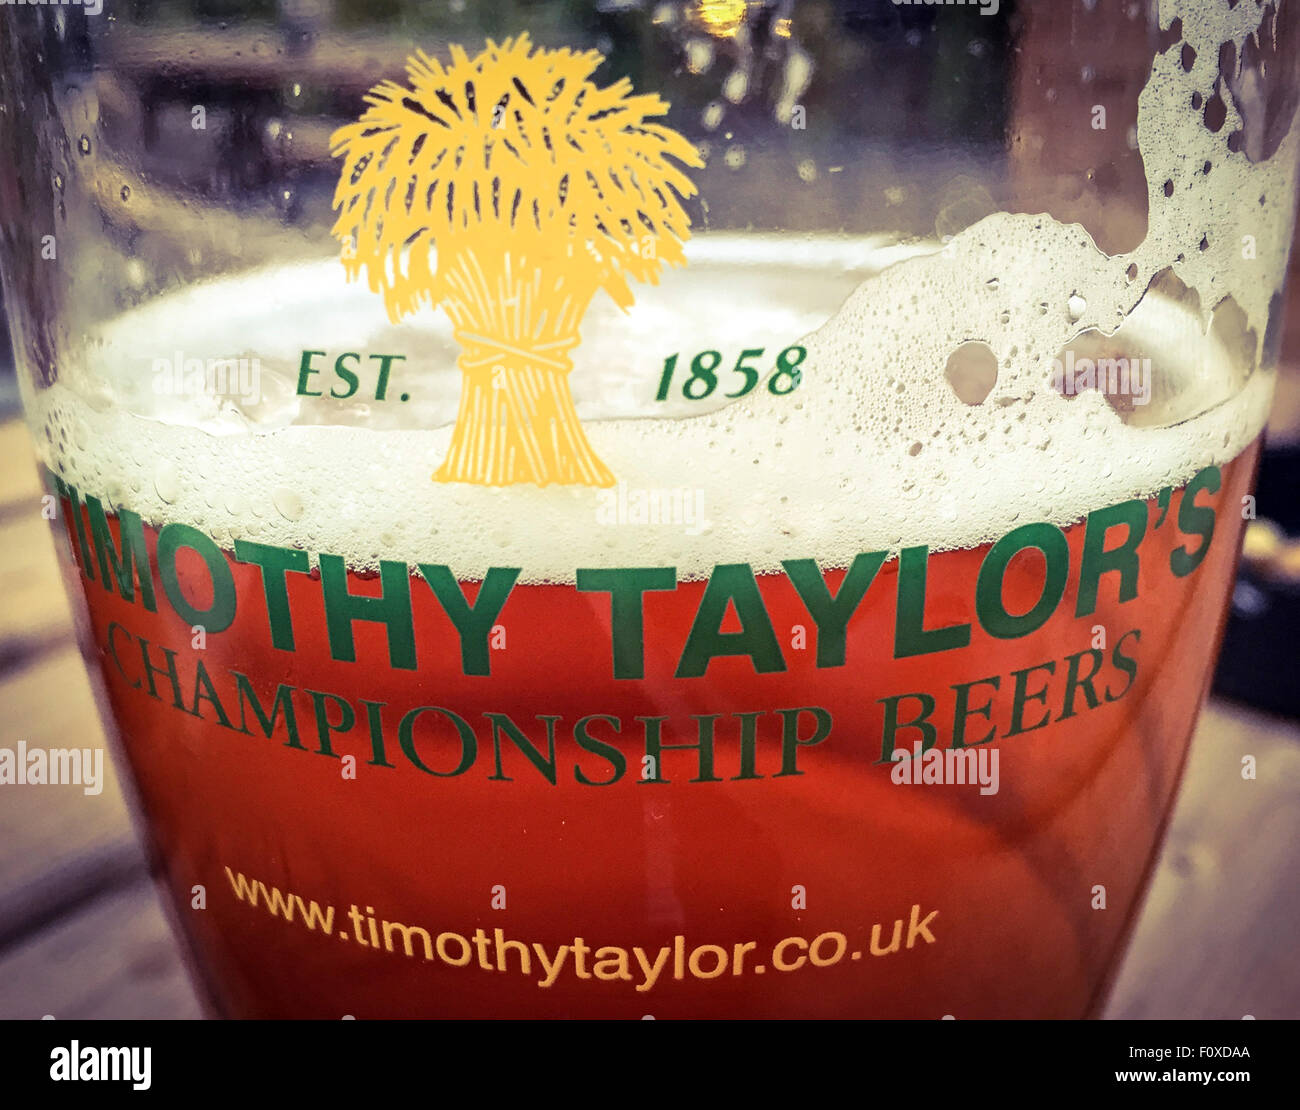 beer,CAMRA,ale,TimothyTaylor,TT TimothyTaylor Championship Beers glass & ale,Yorkshire,England,UK,in,a,glass,pot,pint,english,1858,taken,yard,garden,official,traditional,drink,pub,bar,head,foam,foamy,Yorkshire,England,UK,northern,GoTonySmith,Buy Pictures of,Buy Images Of